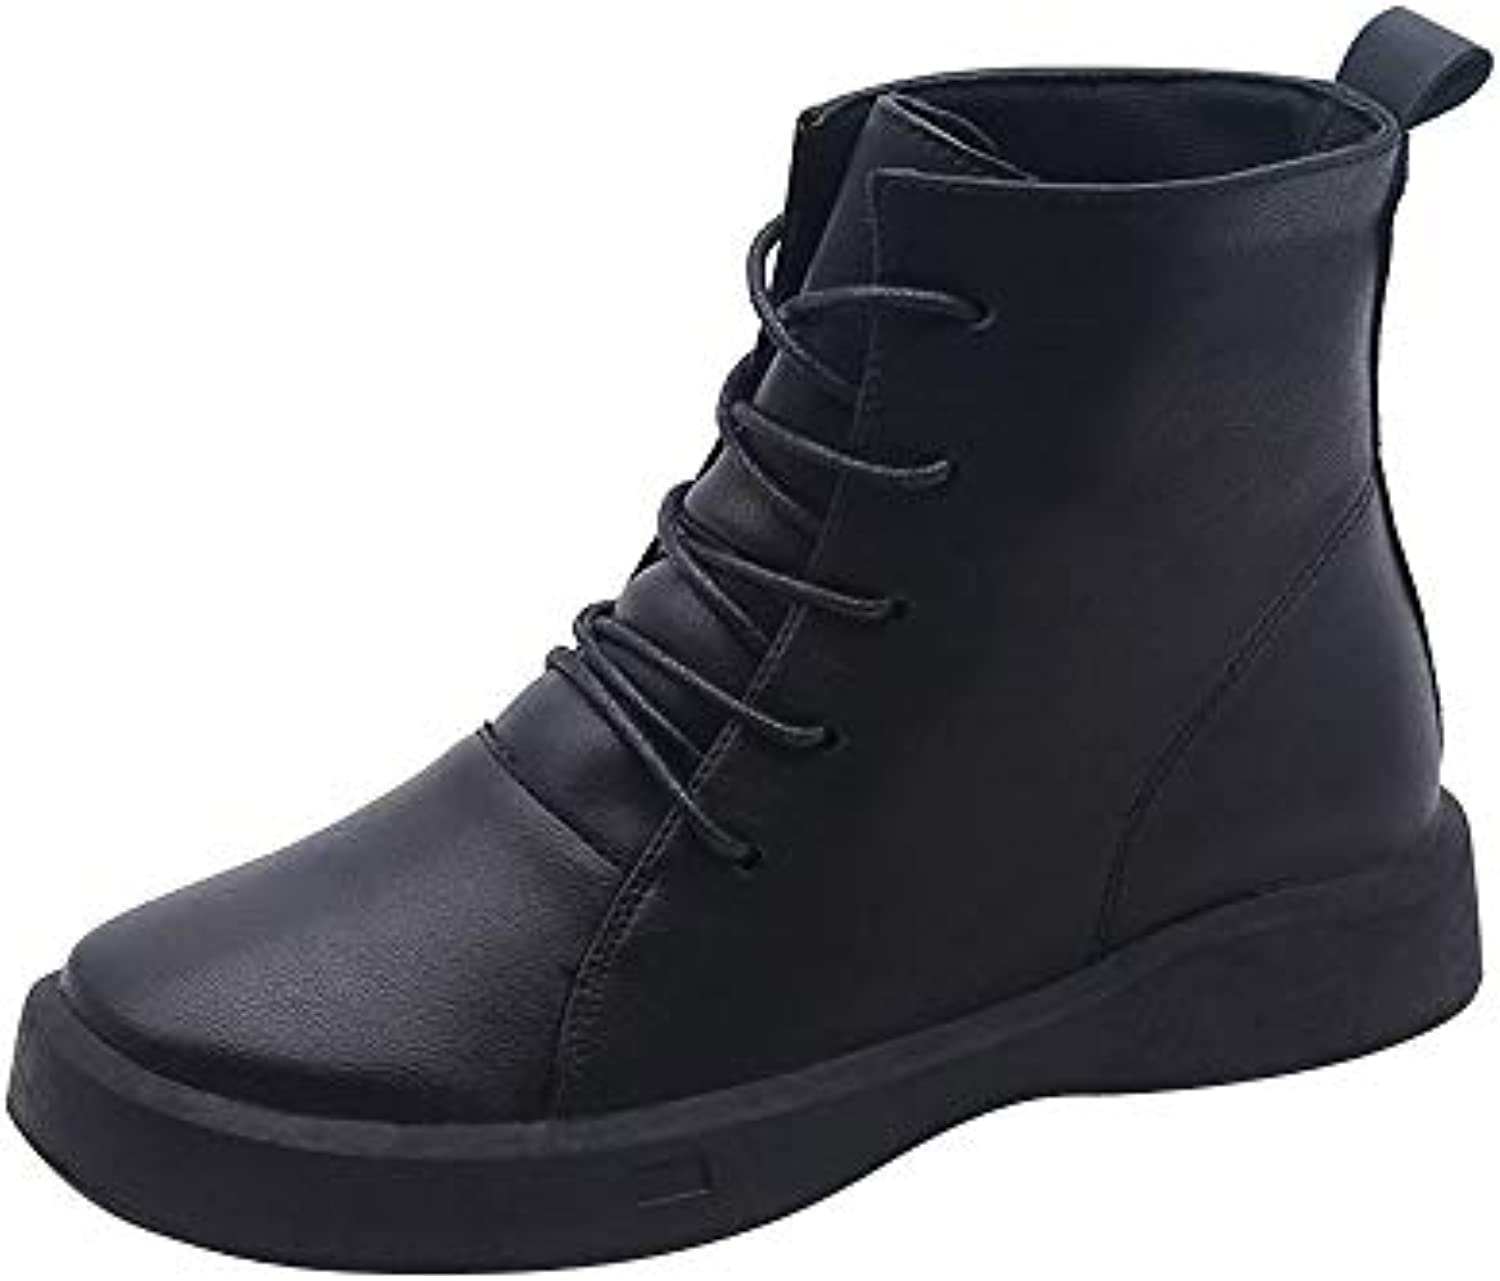 Rawdah Winter Women's High Flat Non-Slip Round Toe Low Cylinder High Women's Help Martin Boots Ladies Faux Leather Mid Cuff... a75b46